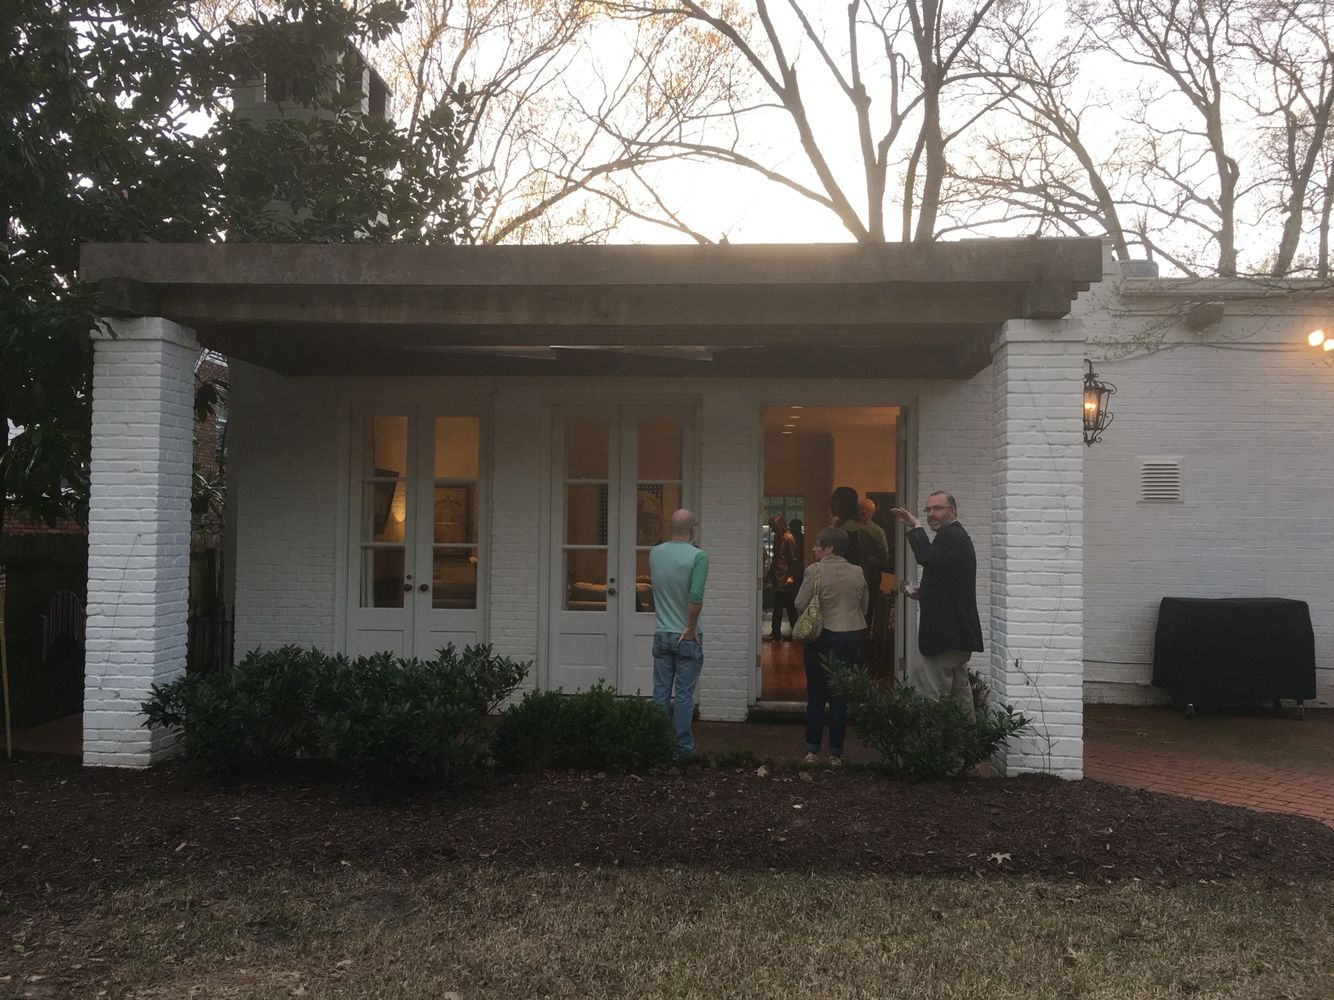 Front Porch Renovation: 3 French doors and a pergola, but wooded posts